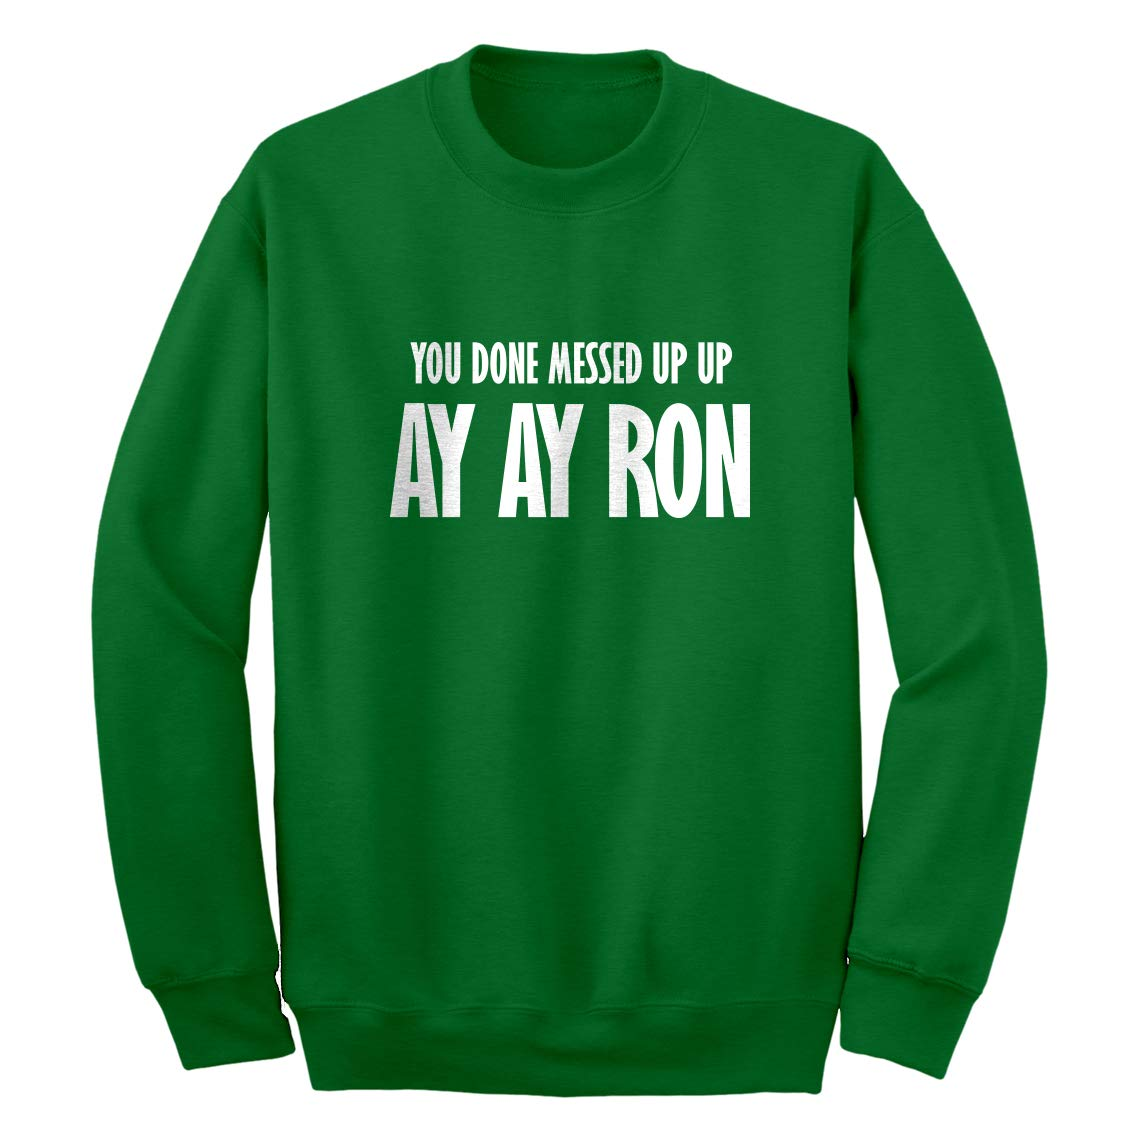 Indica Plateau You Done Messed up Ay Ay Ron Unisex Adult Sweatshirt 3791-C